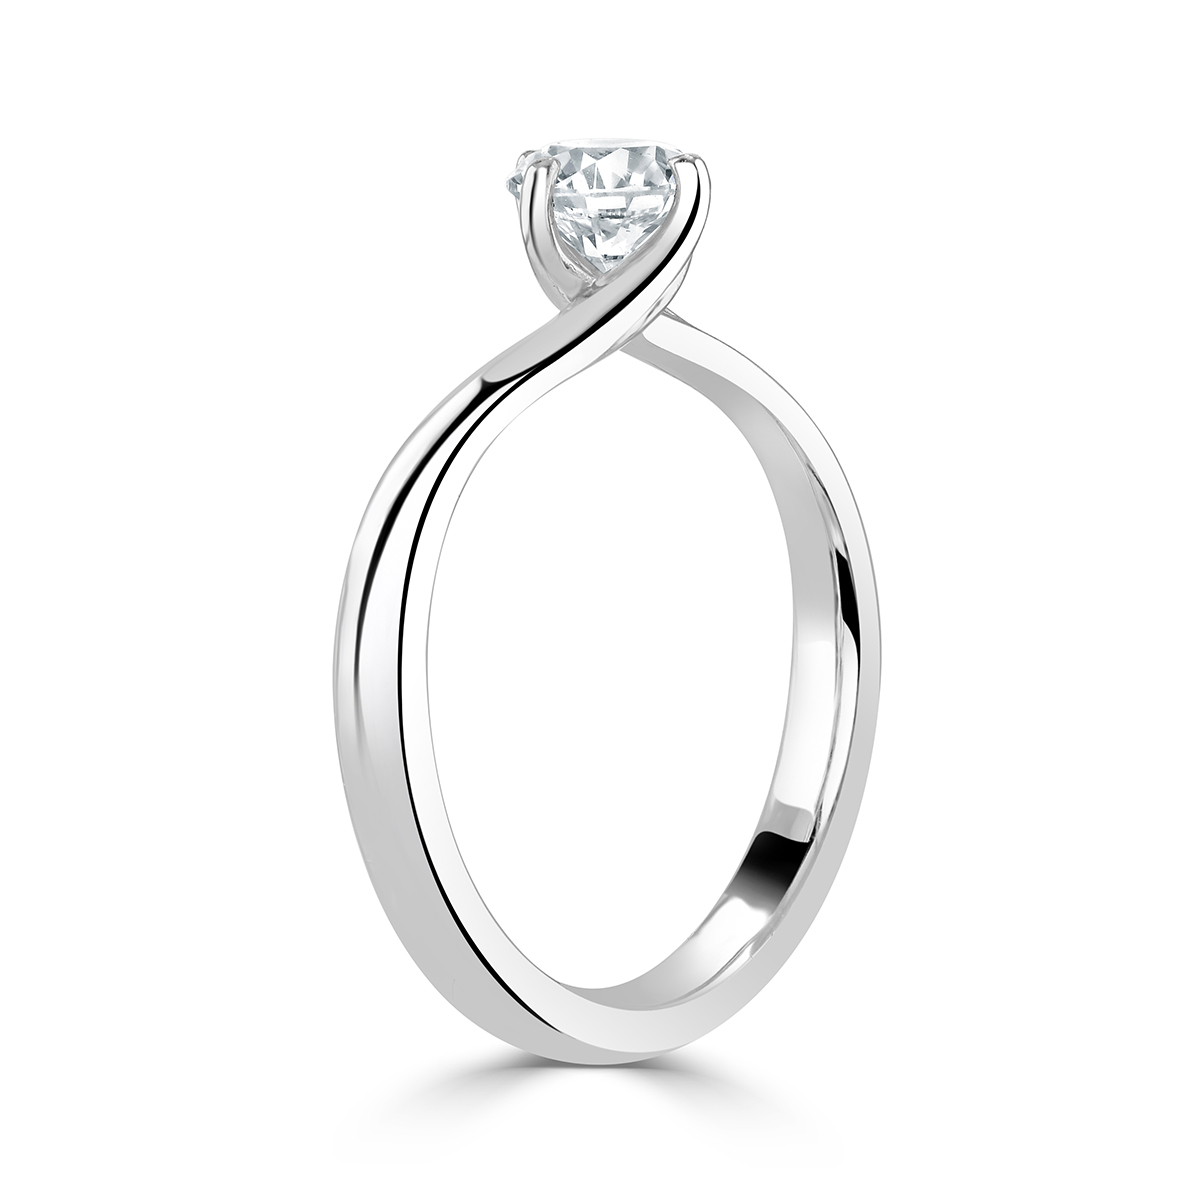 Round Brilliant Cut Platinum Diamond